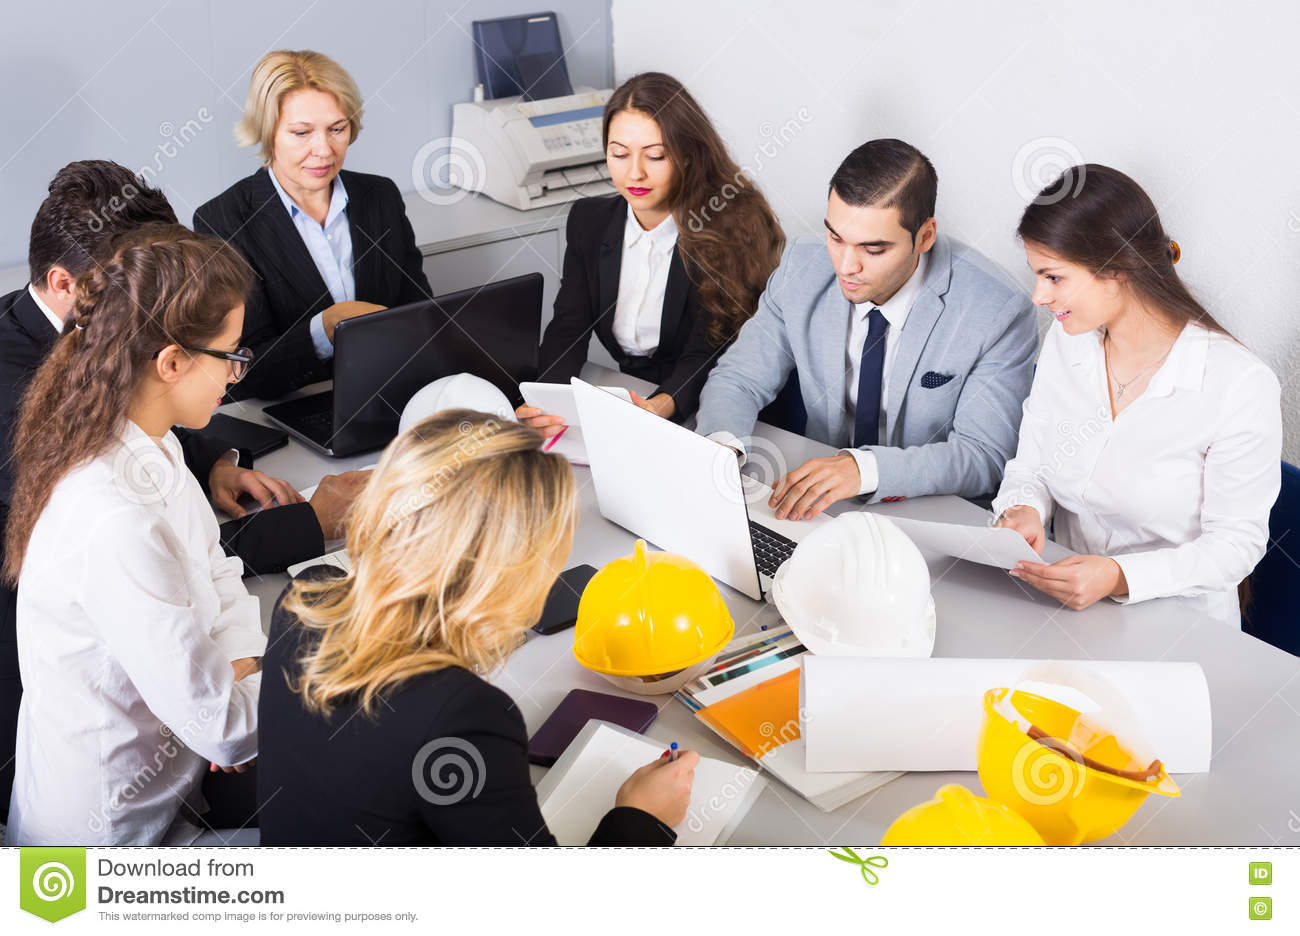 Company Of Architects Brainstorming In Office Stock Image